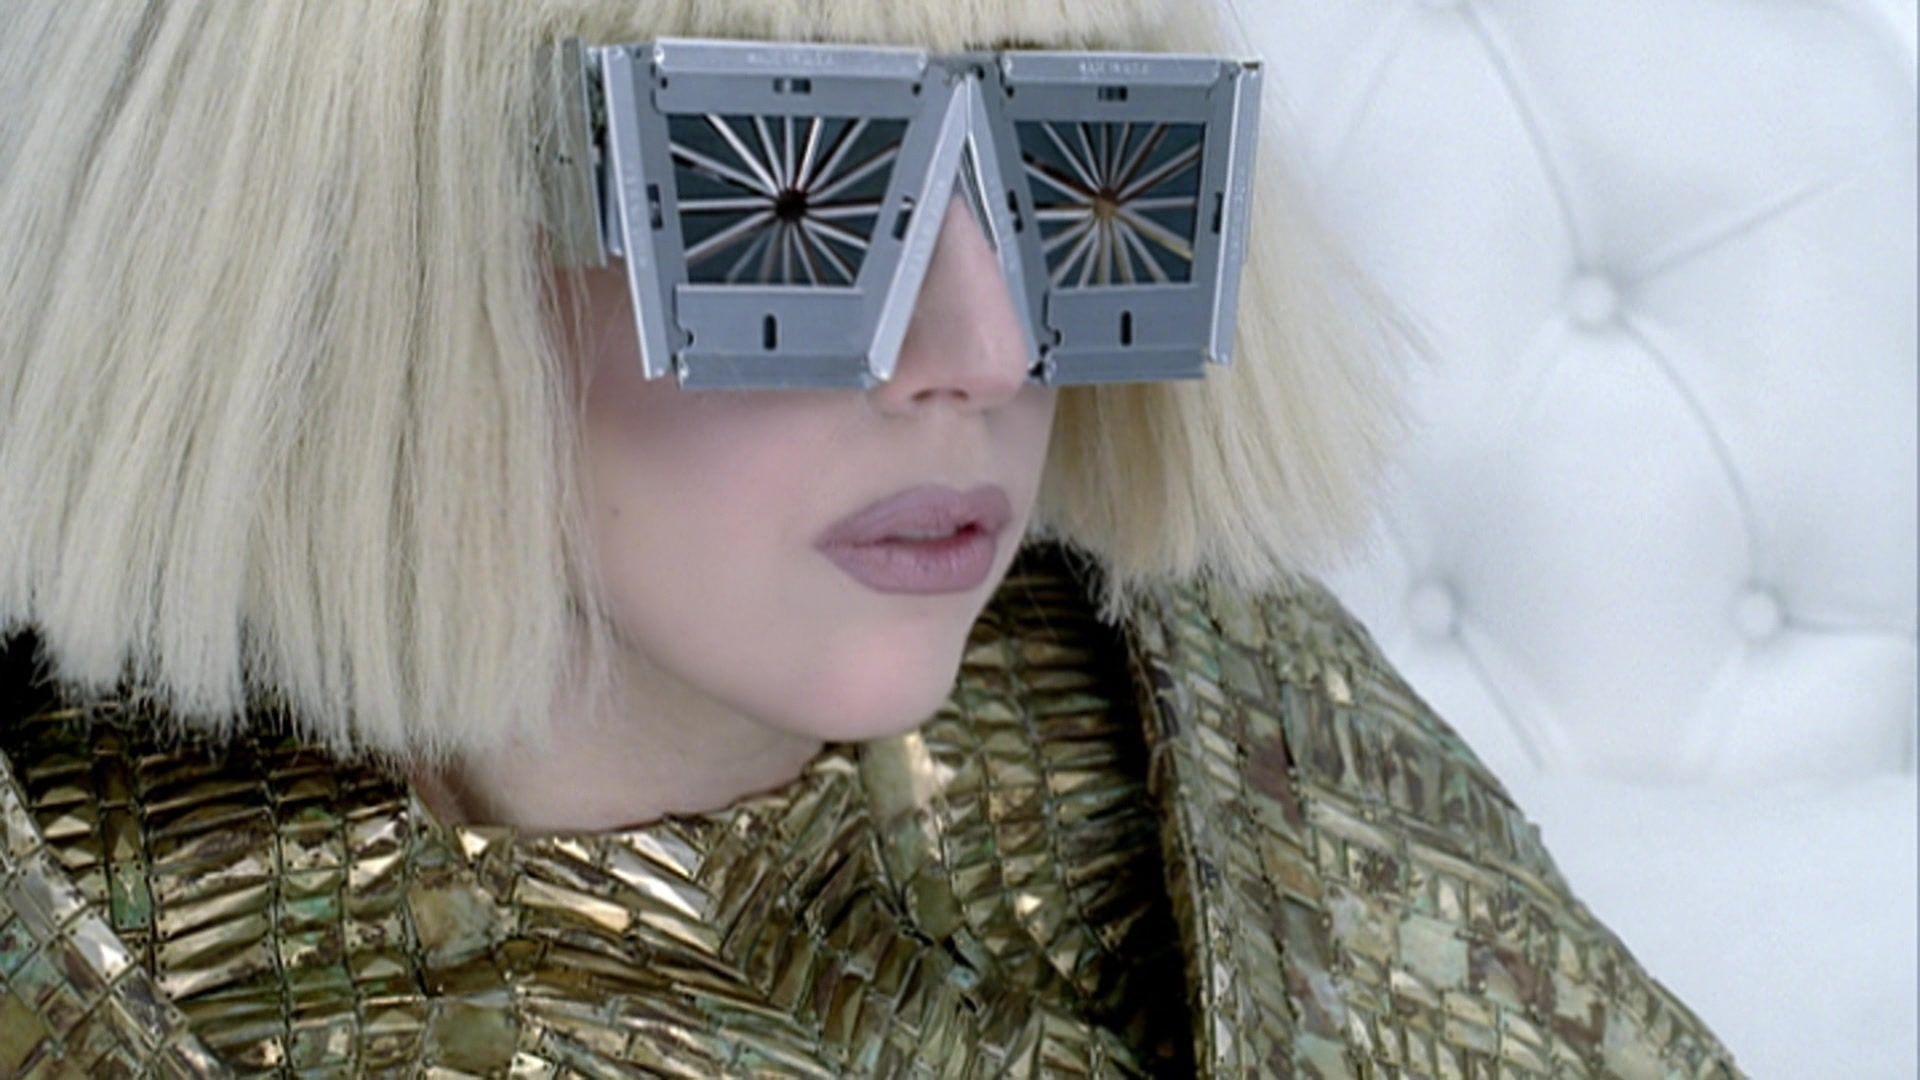 File:Lady Gaga - Bad Romance 003.jpg